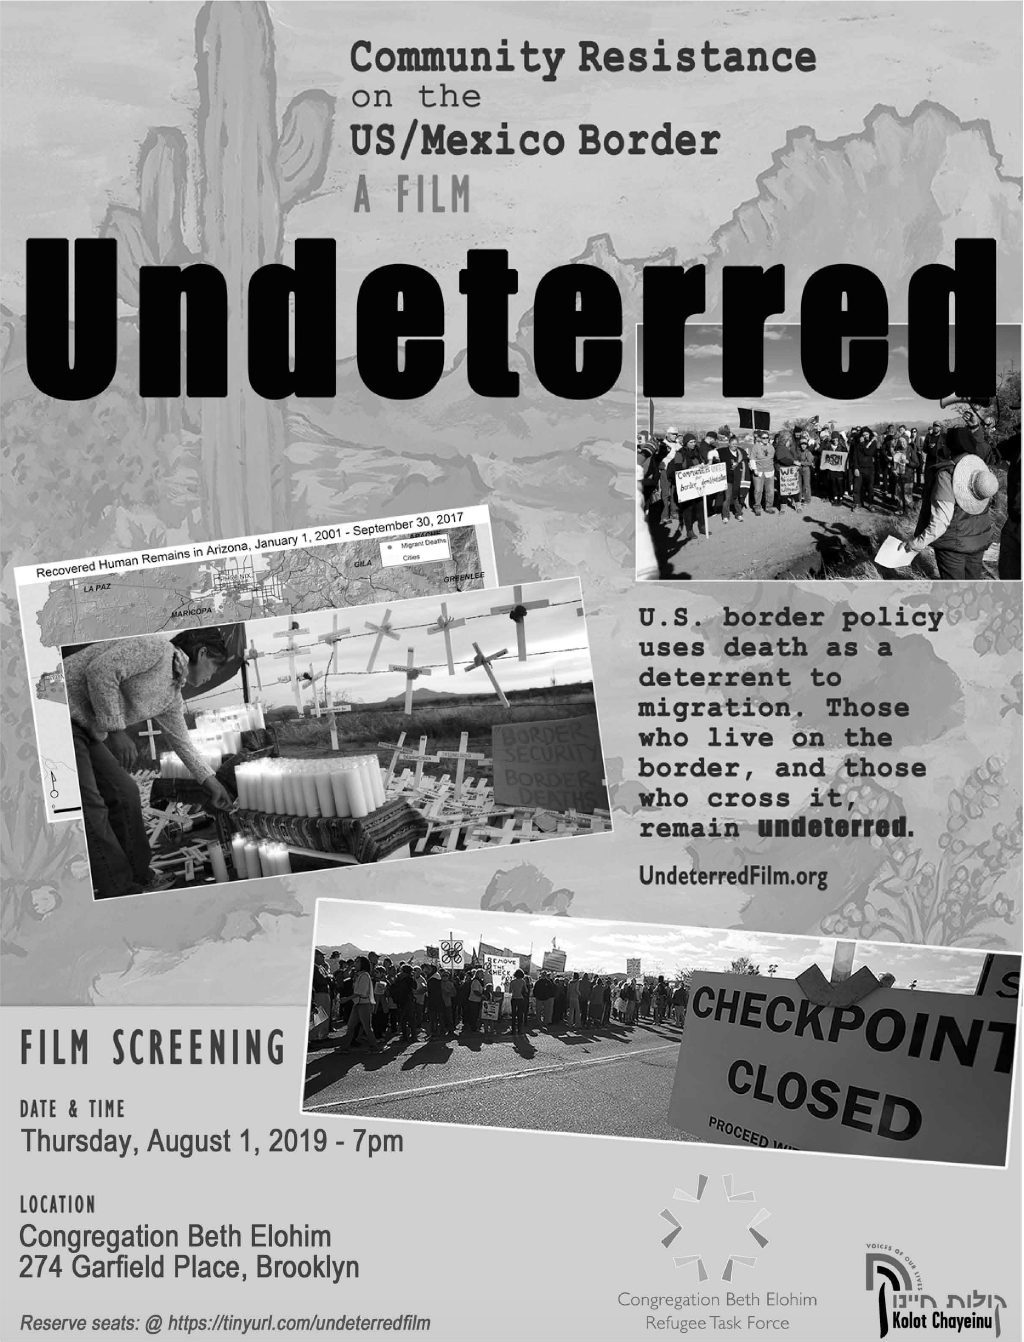 Undeterred Film at CBEBK